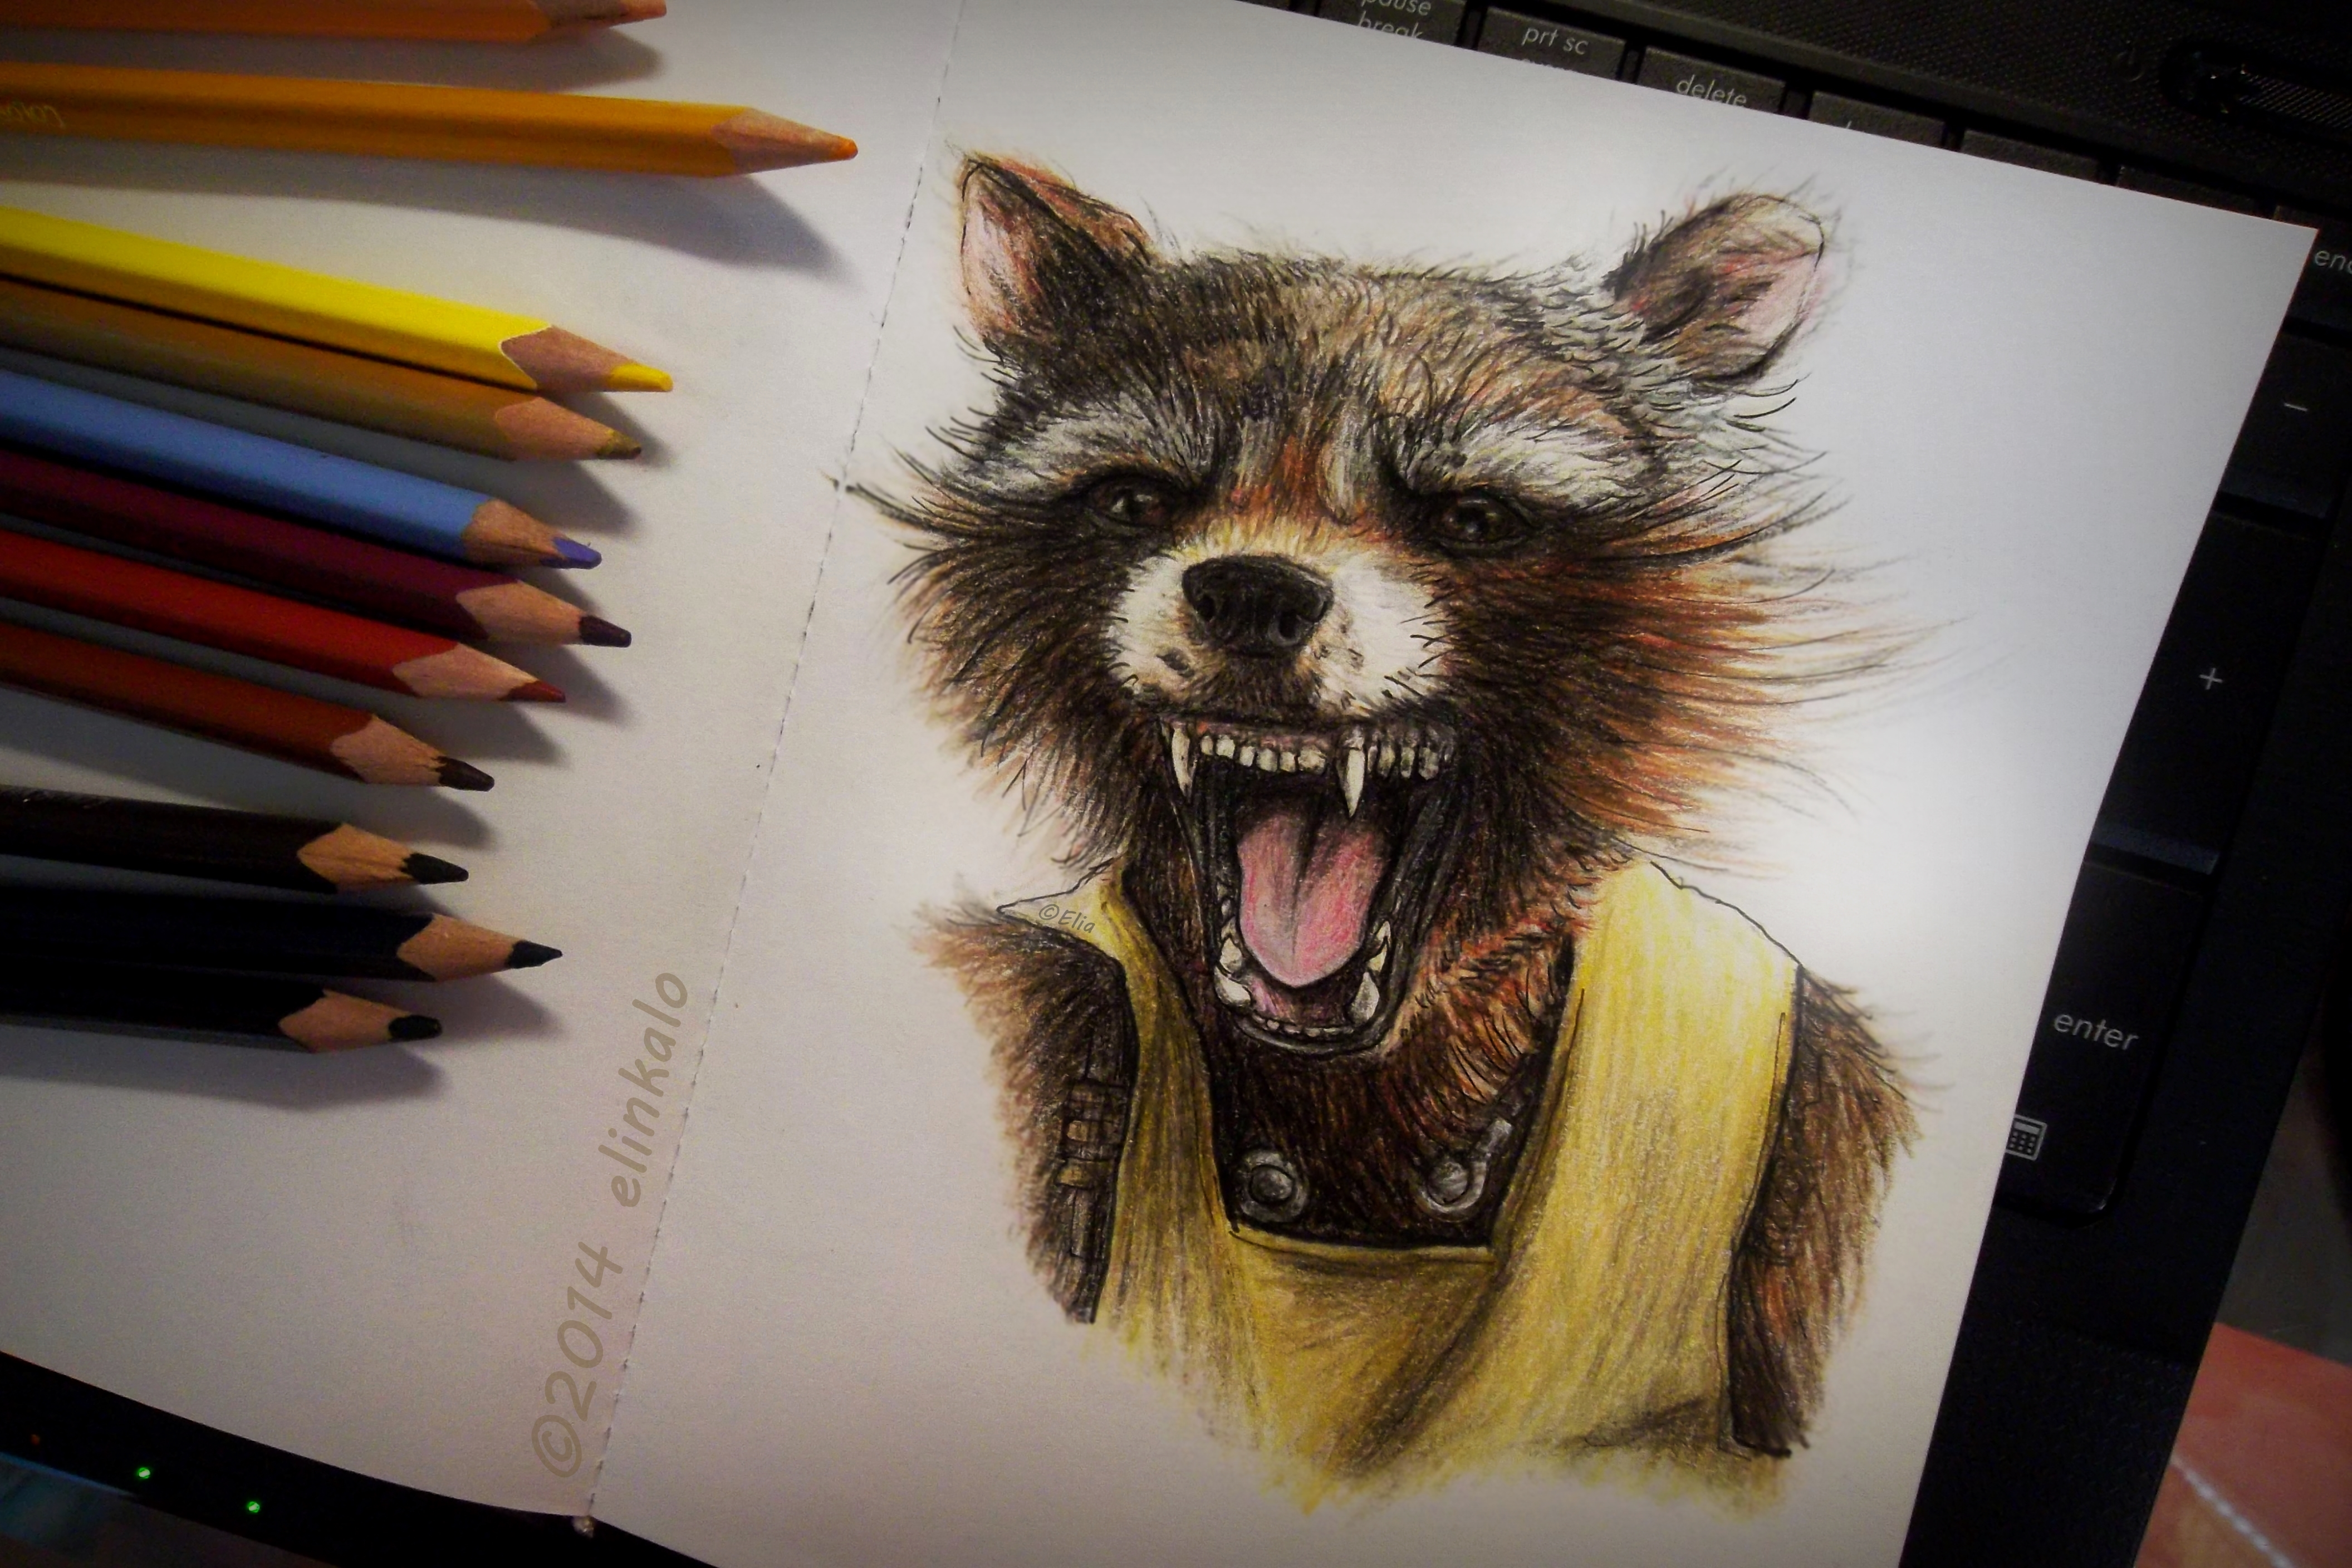 Drawn racoon rocket By Rocket by Raccoon on